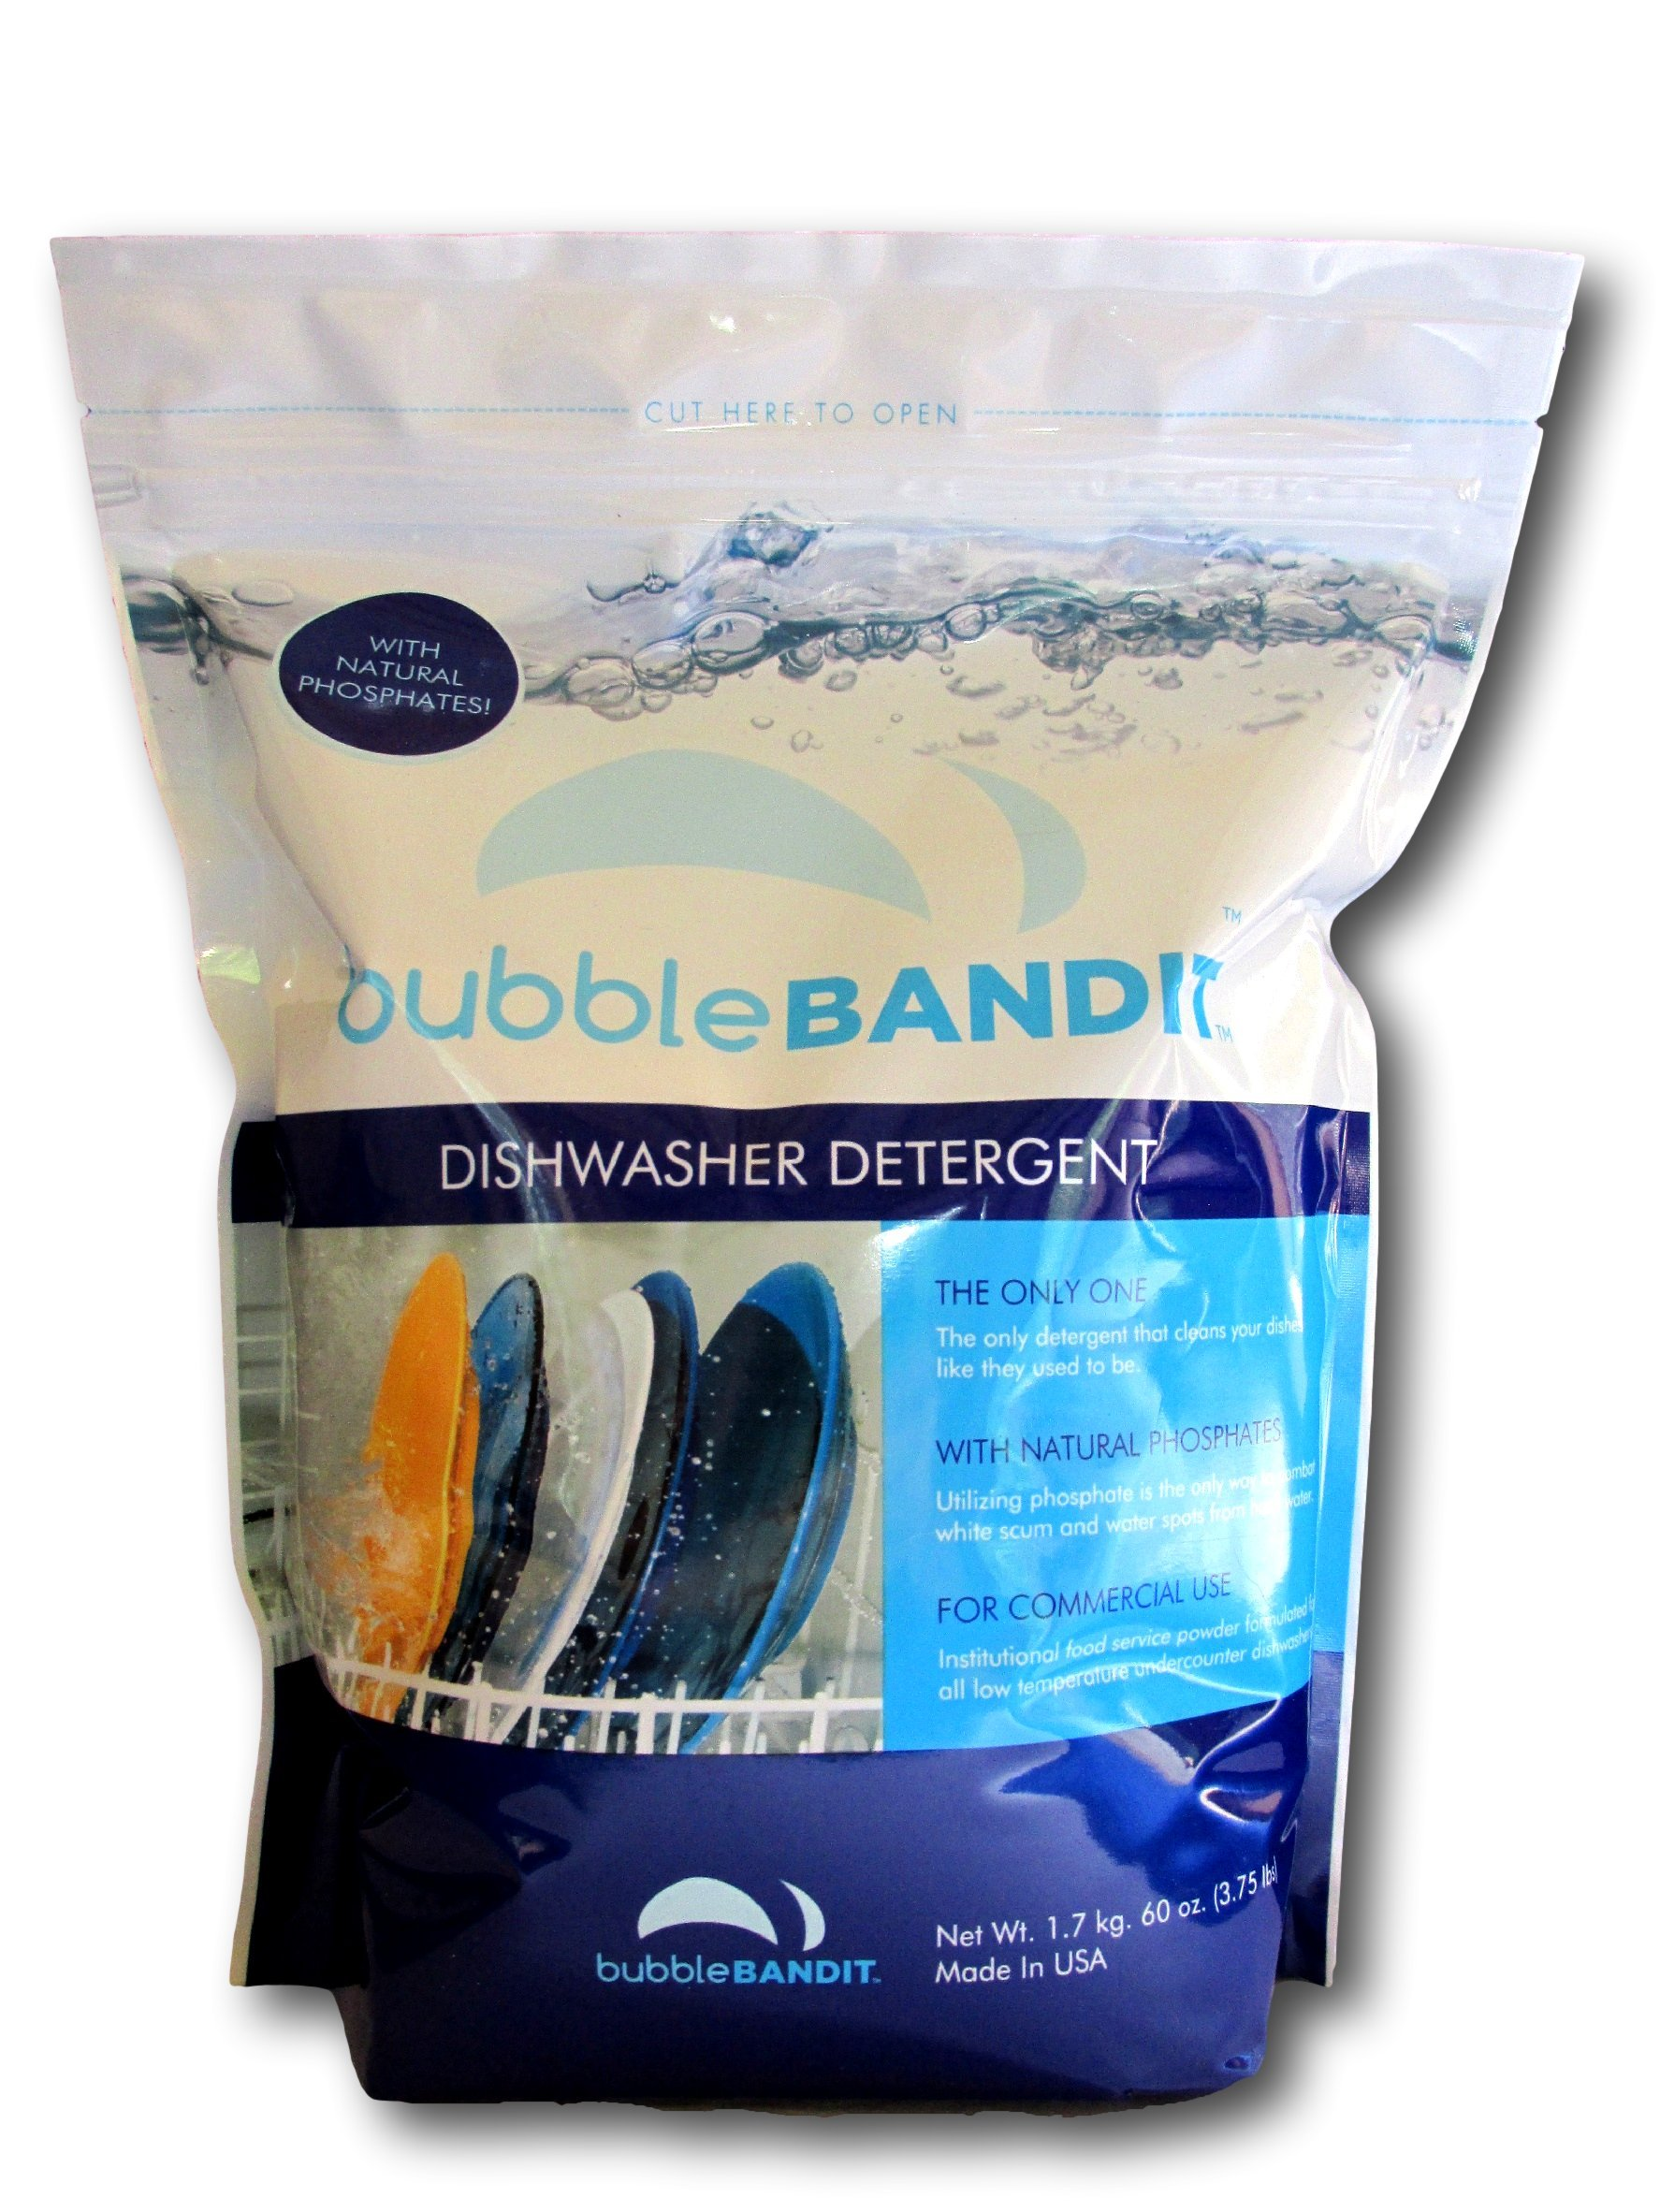 Bubble Bandit Dishwasher Detergent with Phosphate. The Best Dishwasher Detergent for Spotless Dishes in Hard Water! ALL-IN-ONE (Soak, Wash & Rinse). One Bag (3.75 lbs.)